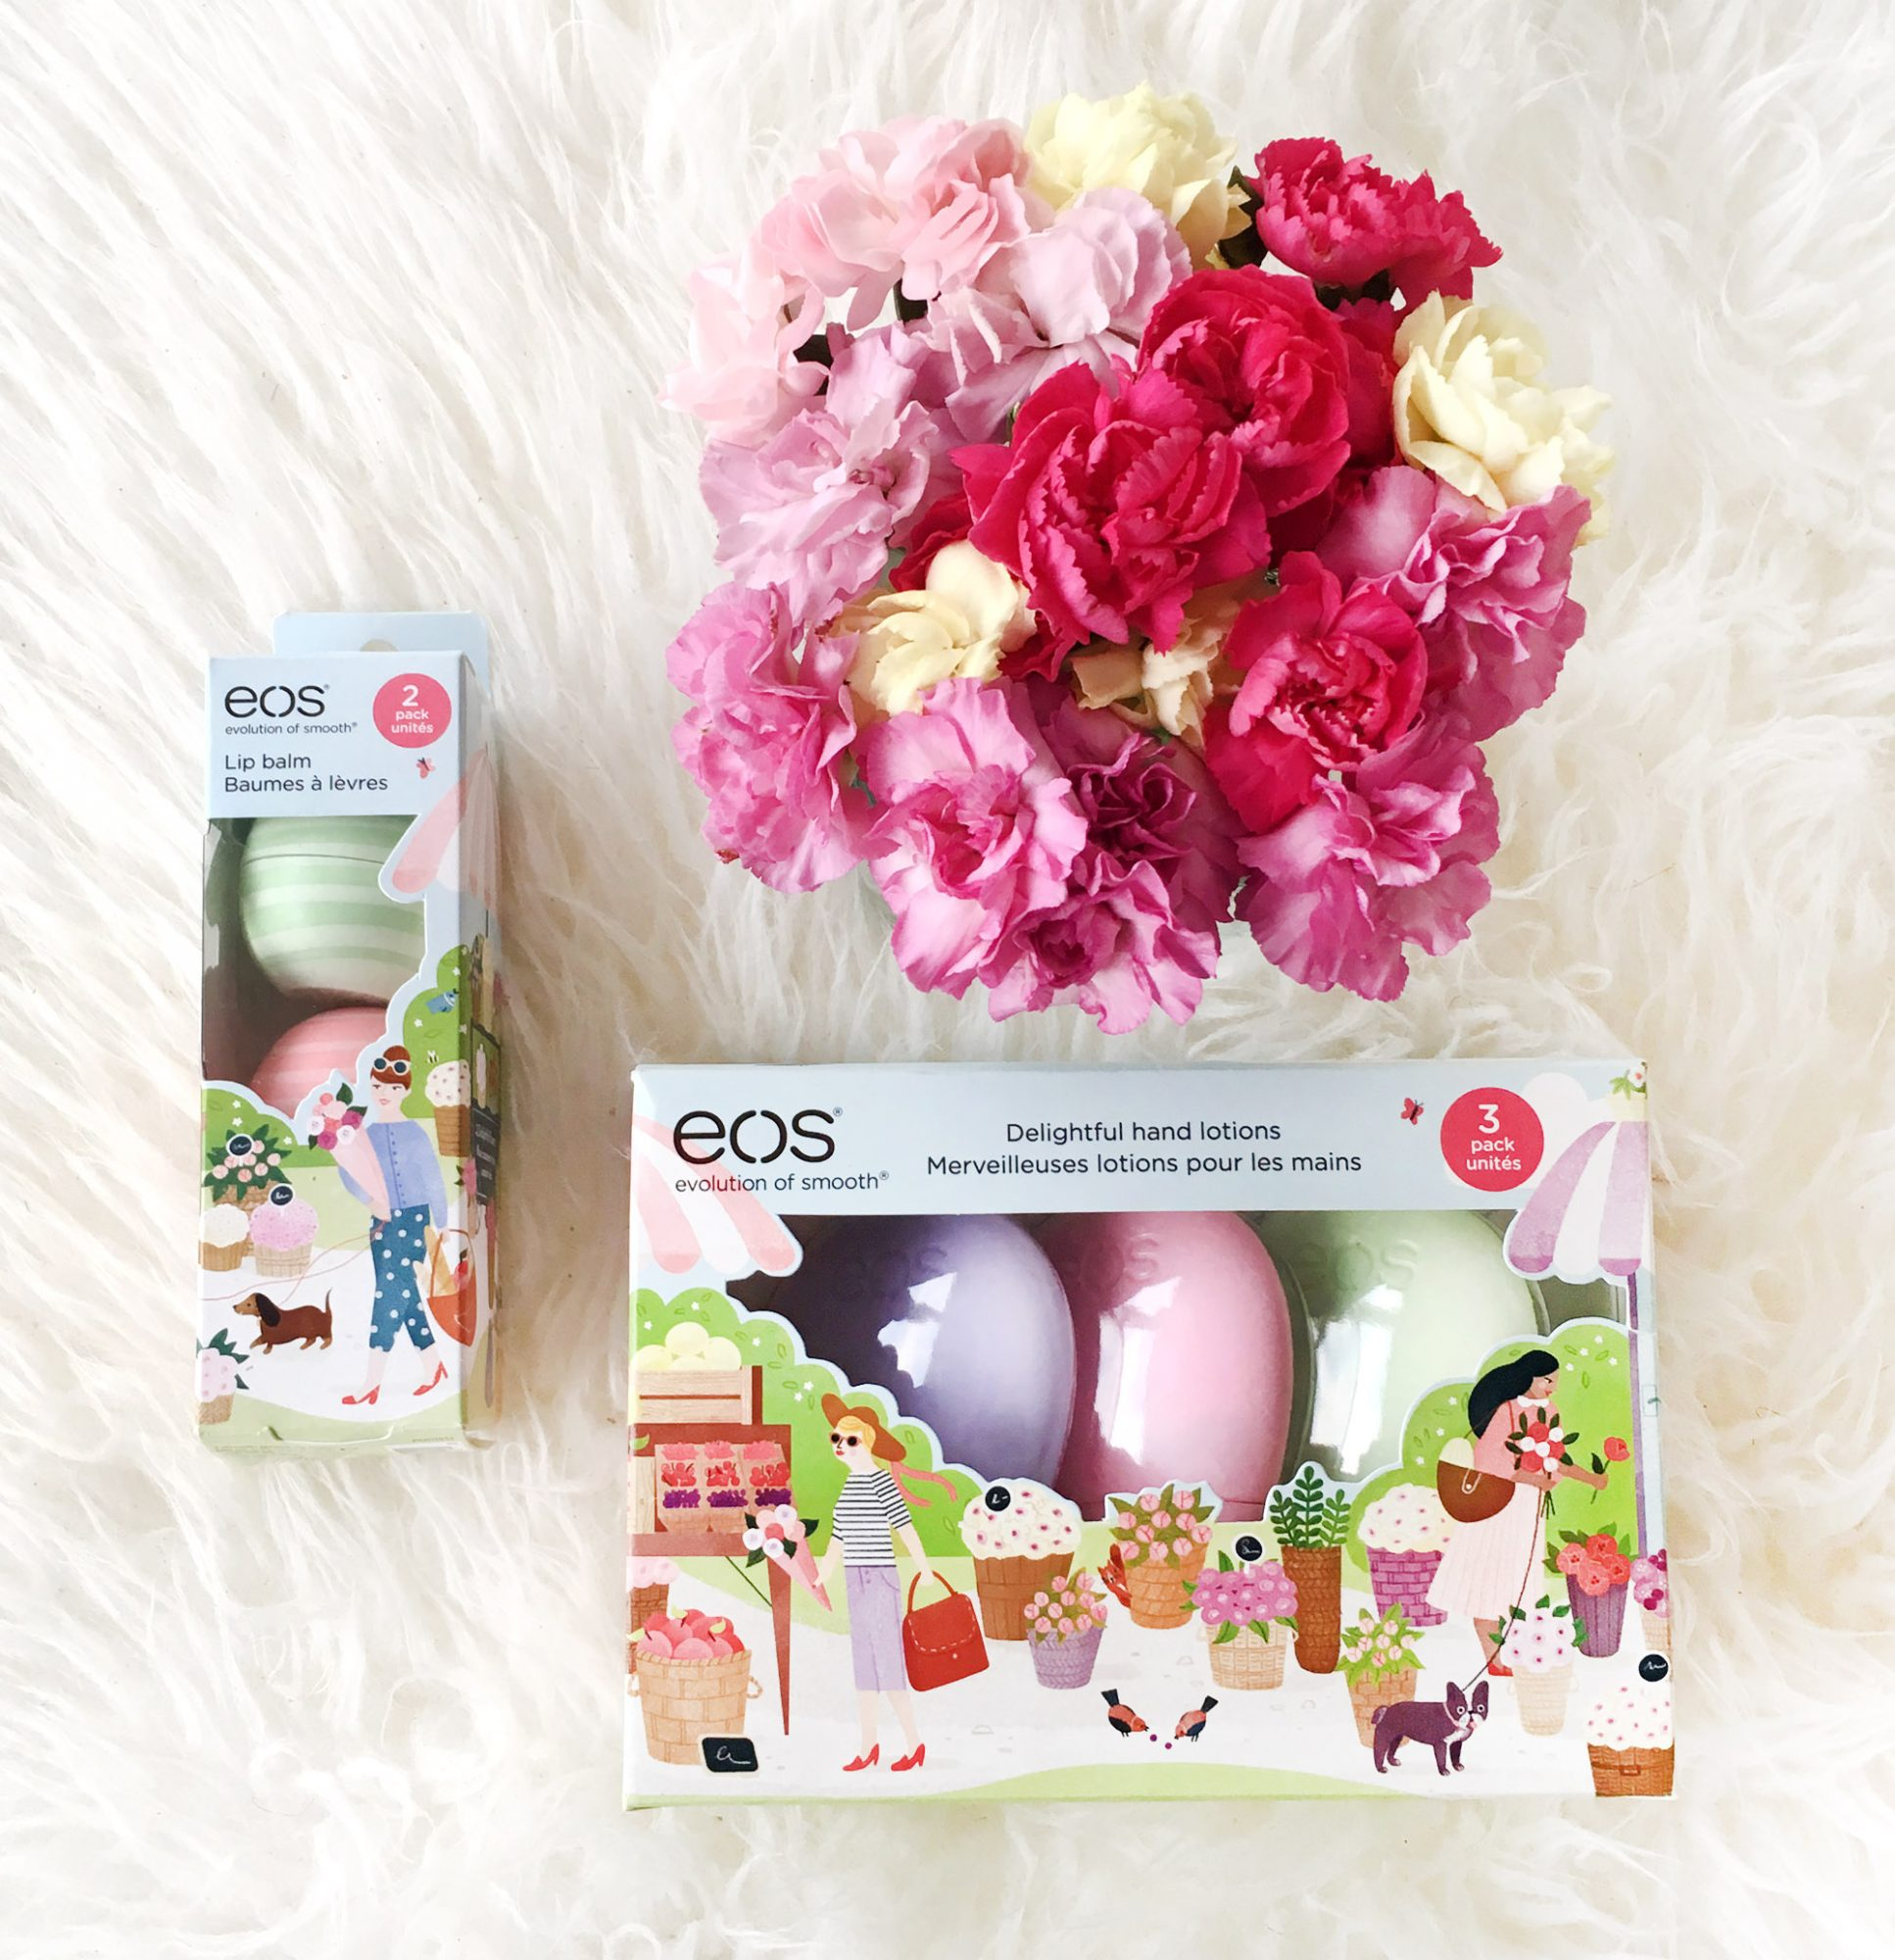 EOS Spring Essentials Lip Balm & Hand Lotion